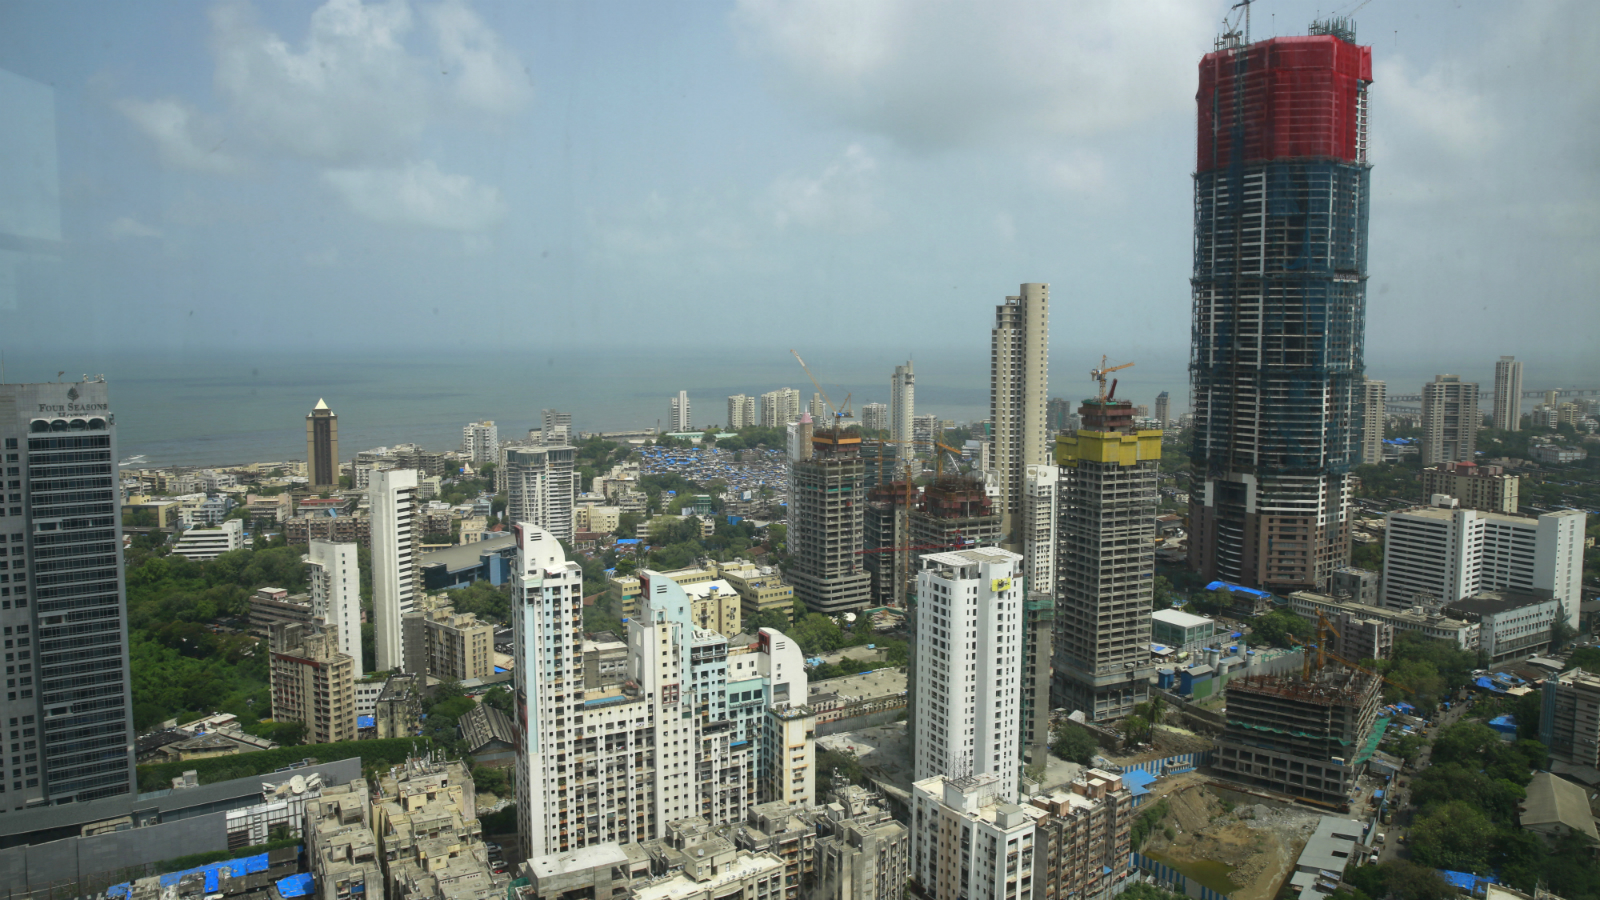 High rises now occupy the prime real estate that once housed the city's textile mills a few decades ago in Mumbai, Wednesday, July 15, 2015.